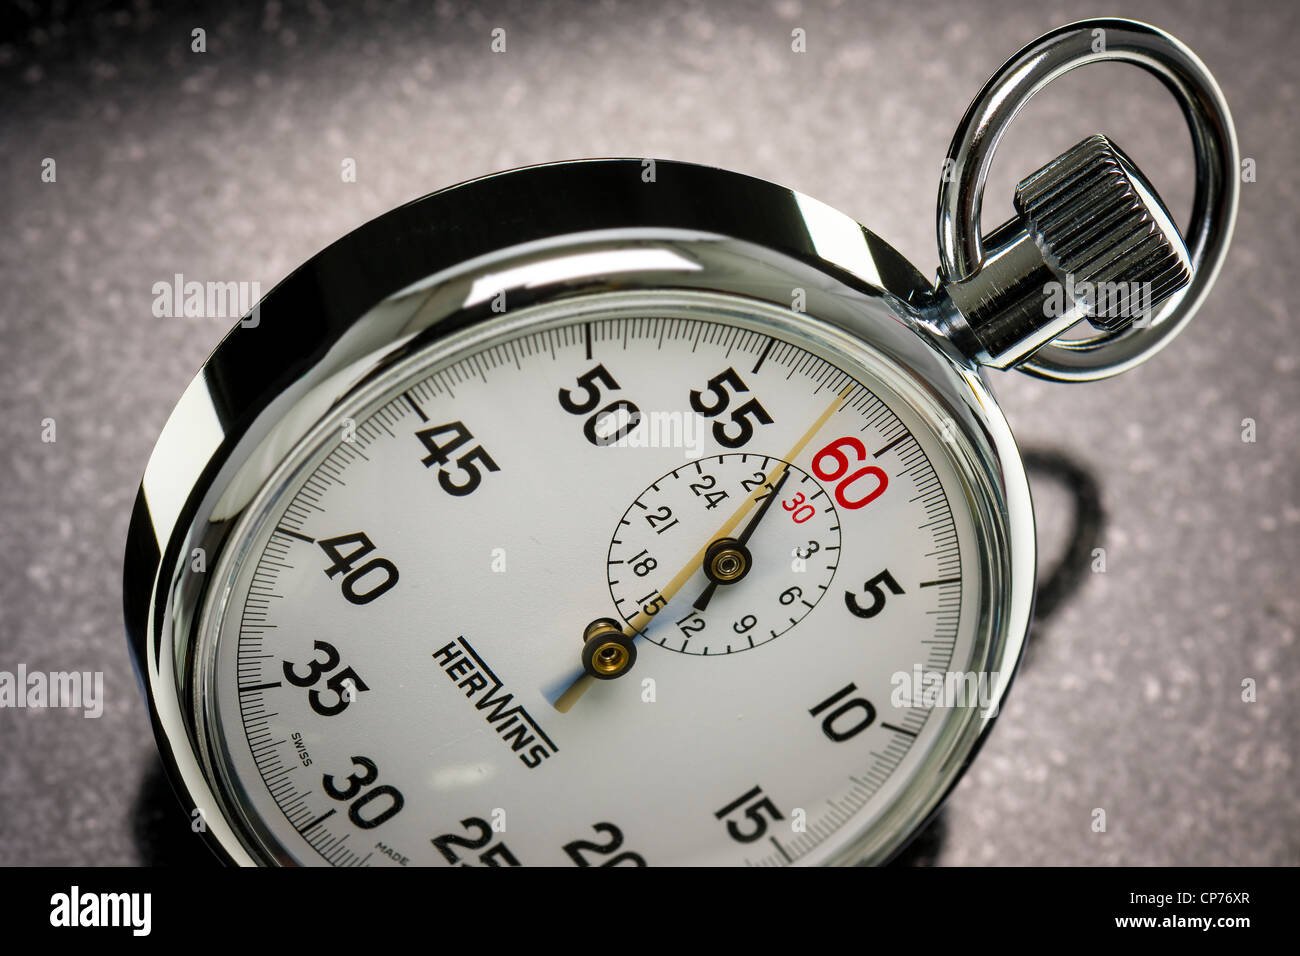 Sixty Seconds - Stock Image